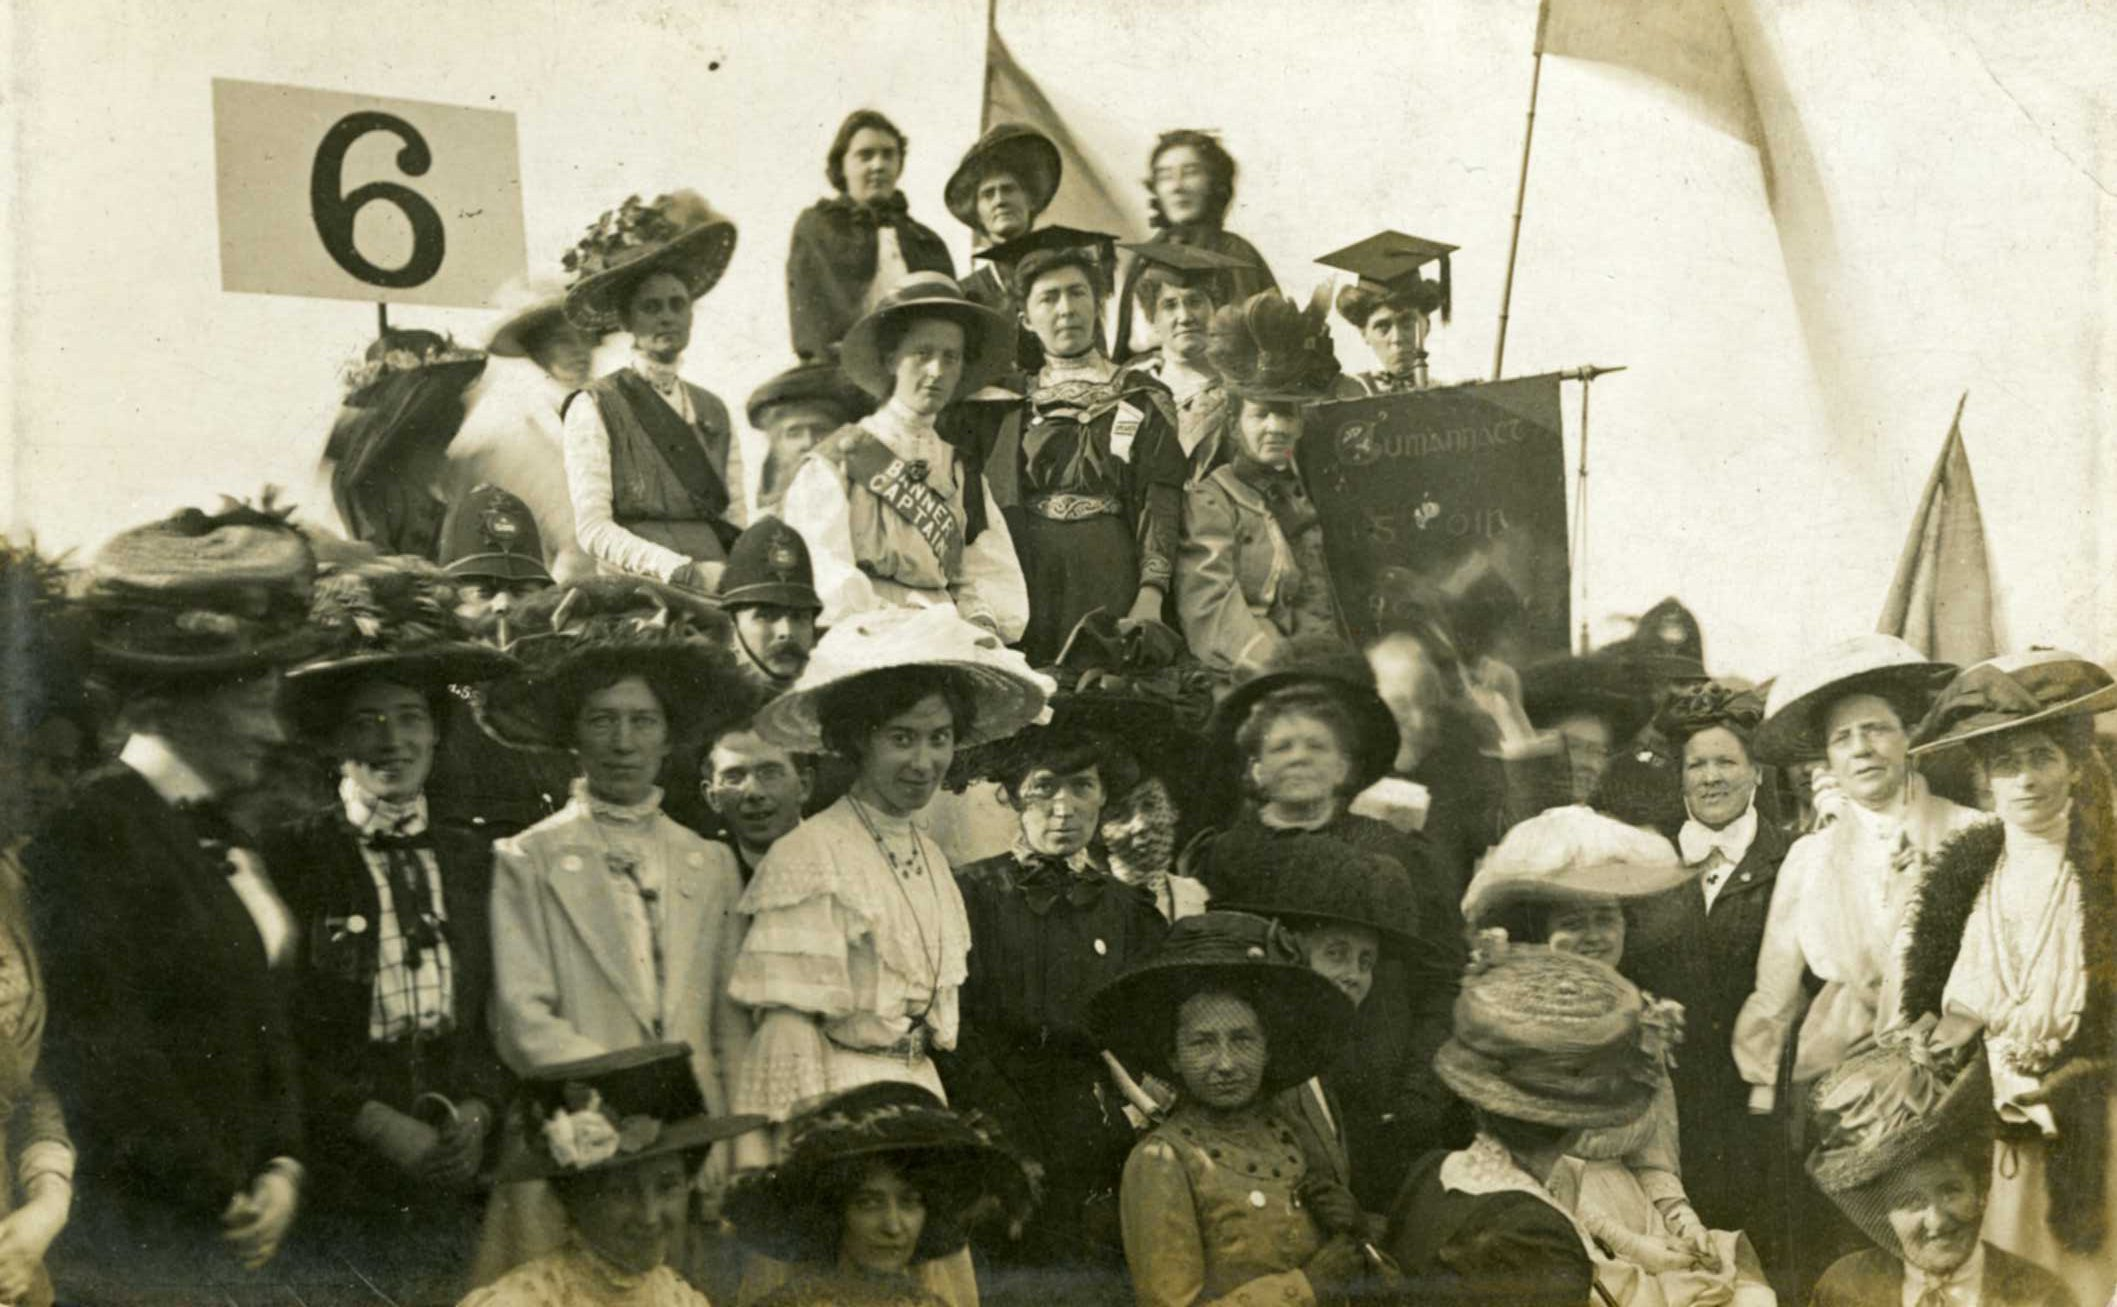 Postcard showing Irish suffragettes at a mass suffrage rally in London, c. 1912. Courtesy of Dublin City Library & Archive.